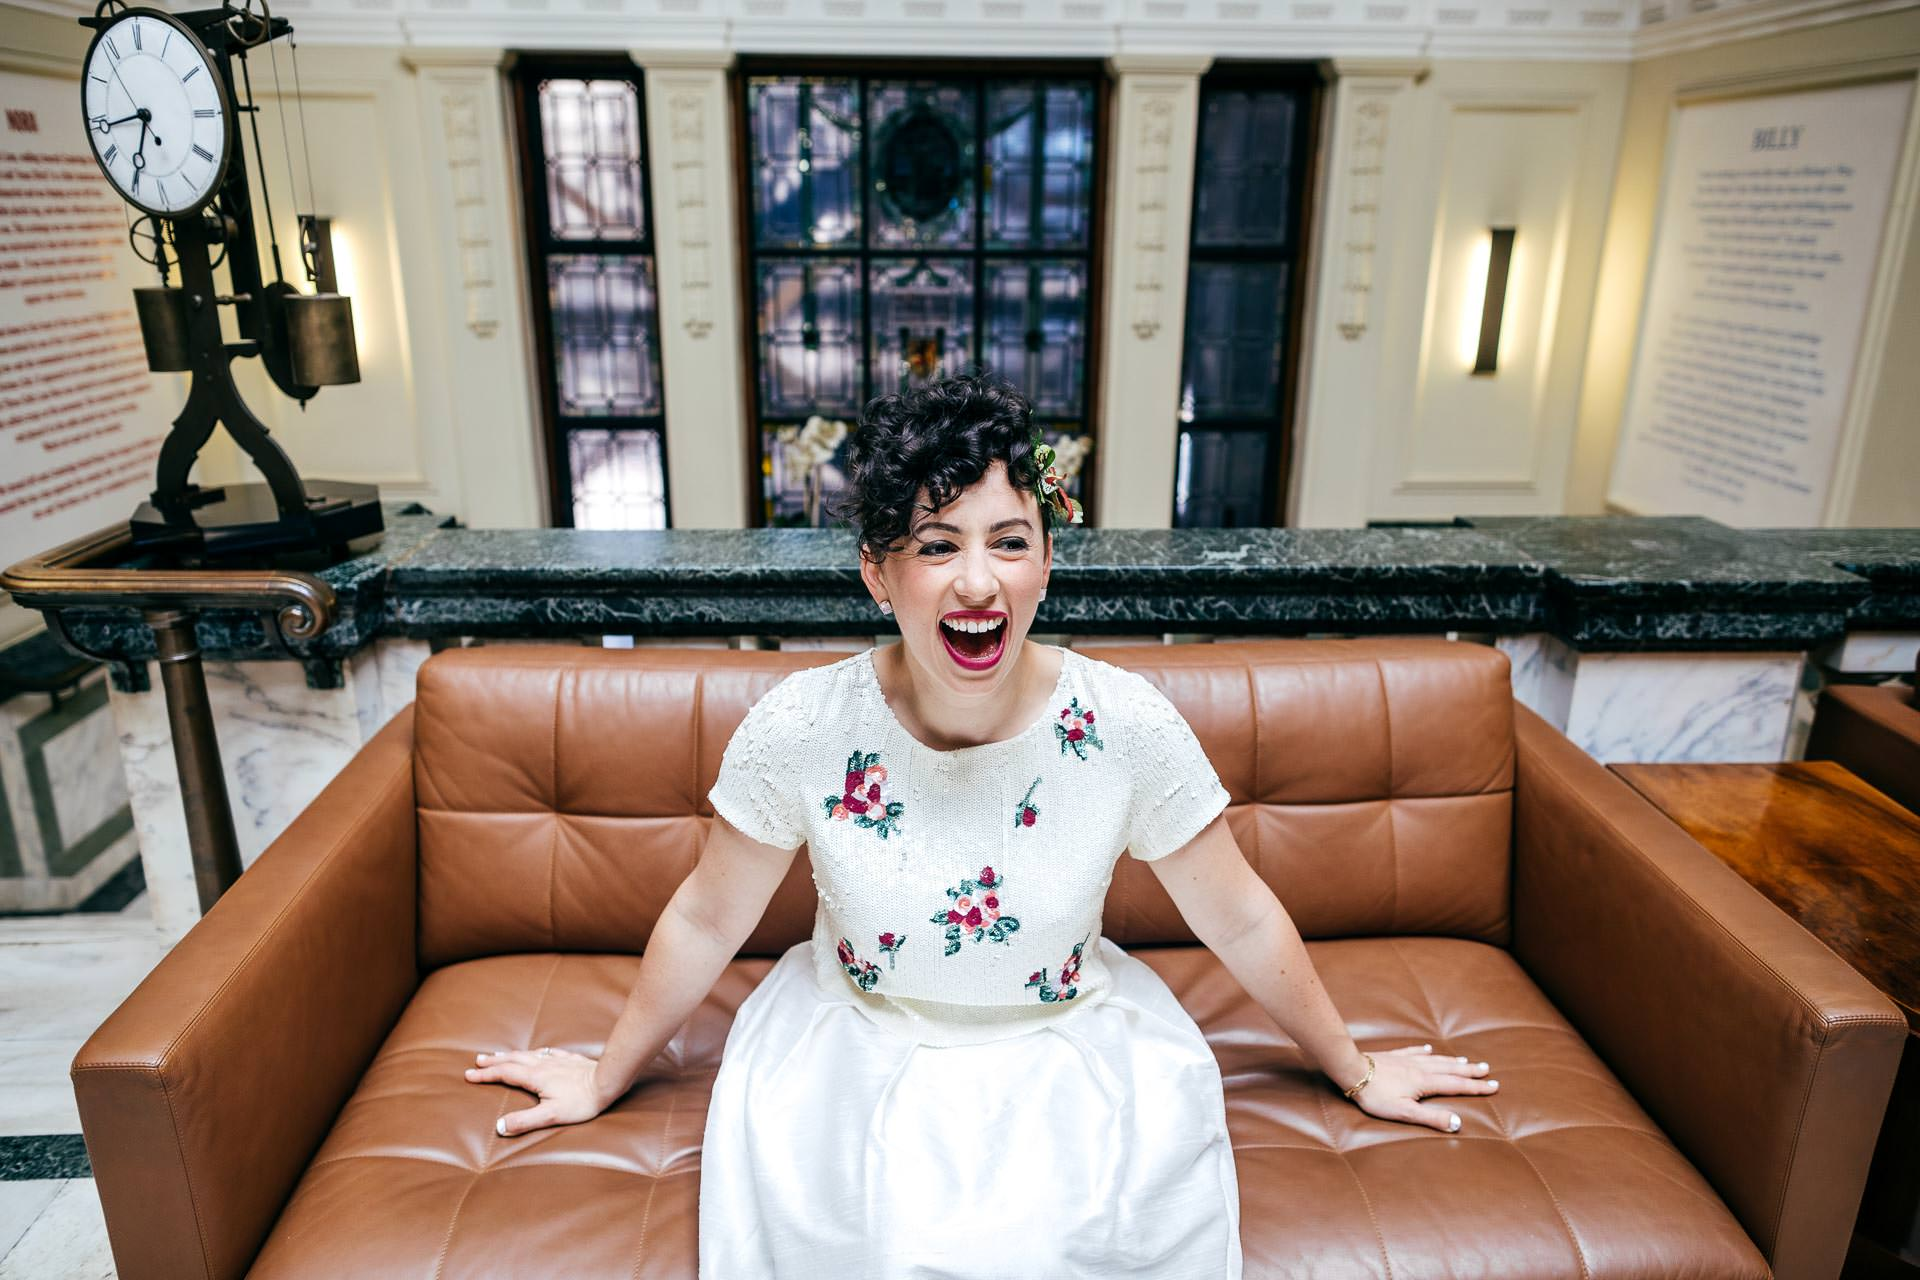 Jewish Bride looking super happy pre ceremony at The Town Hall Hotel London. Sat on sofa waiting to get married.